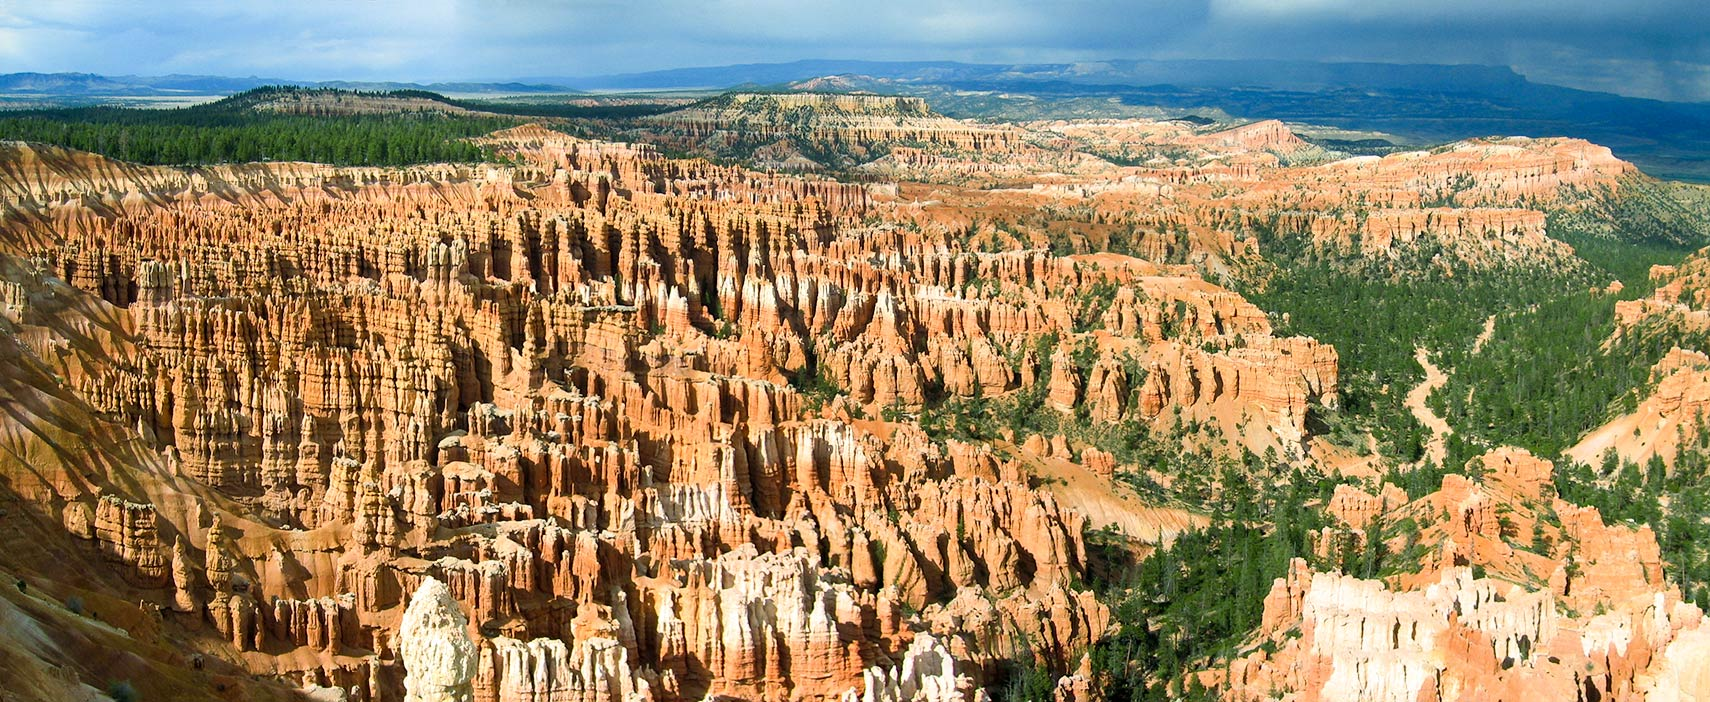 Bryce Canyon National Park with hoodoos